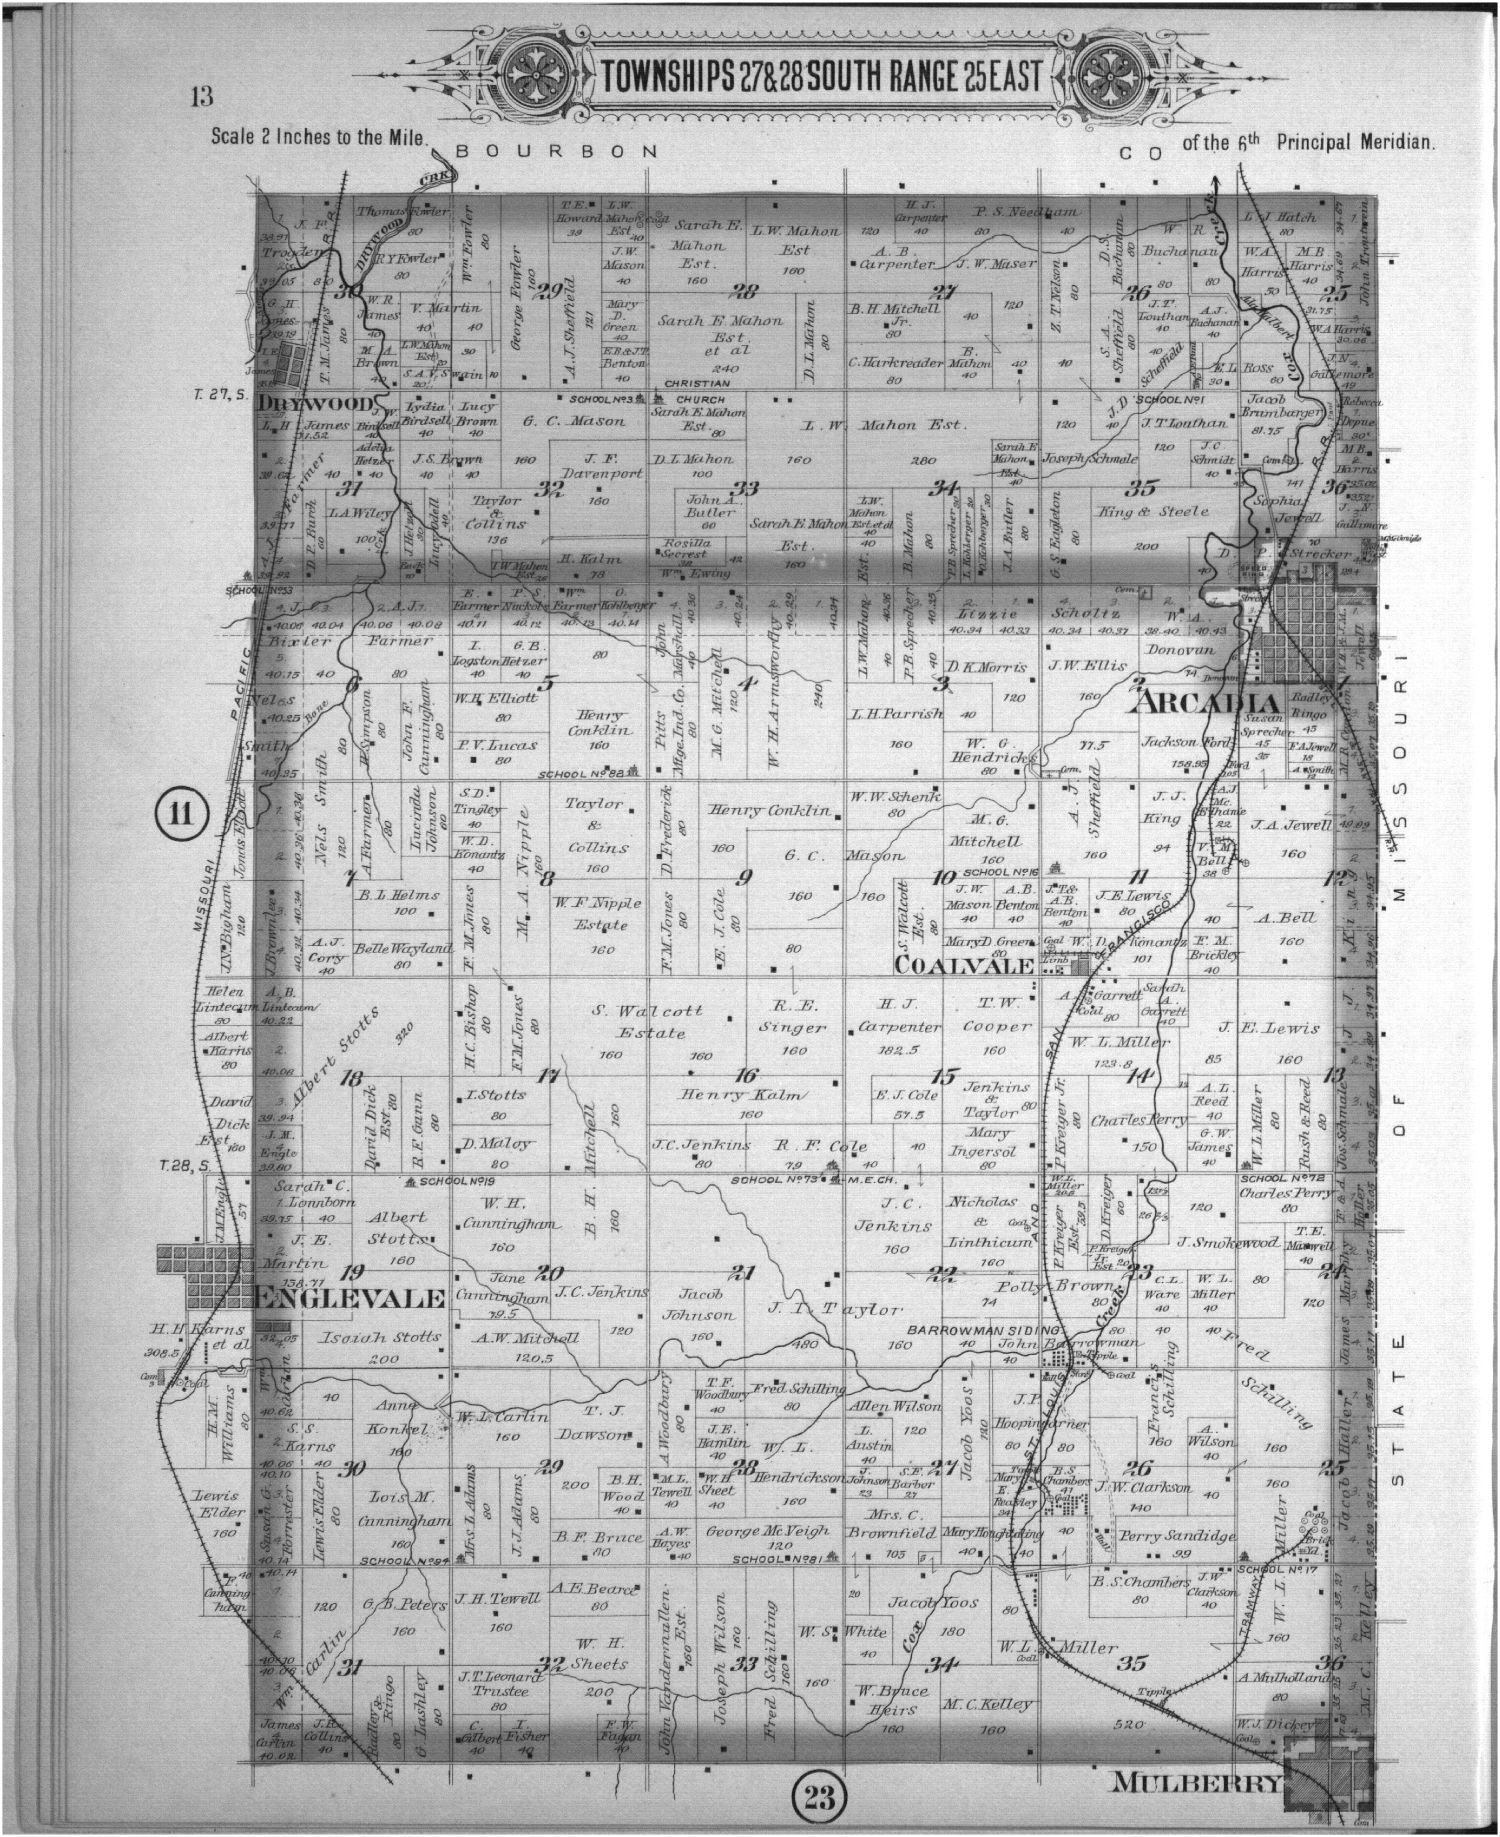 Plat book, Crawford County, Kansas - 10